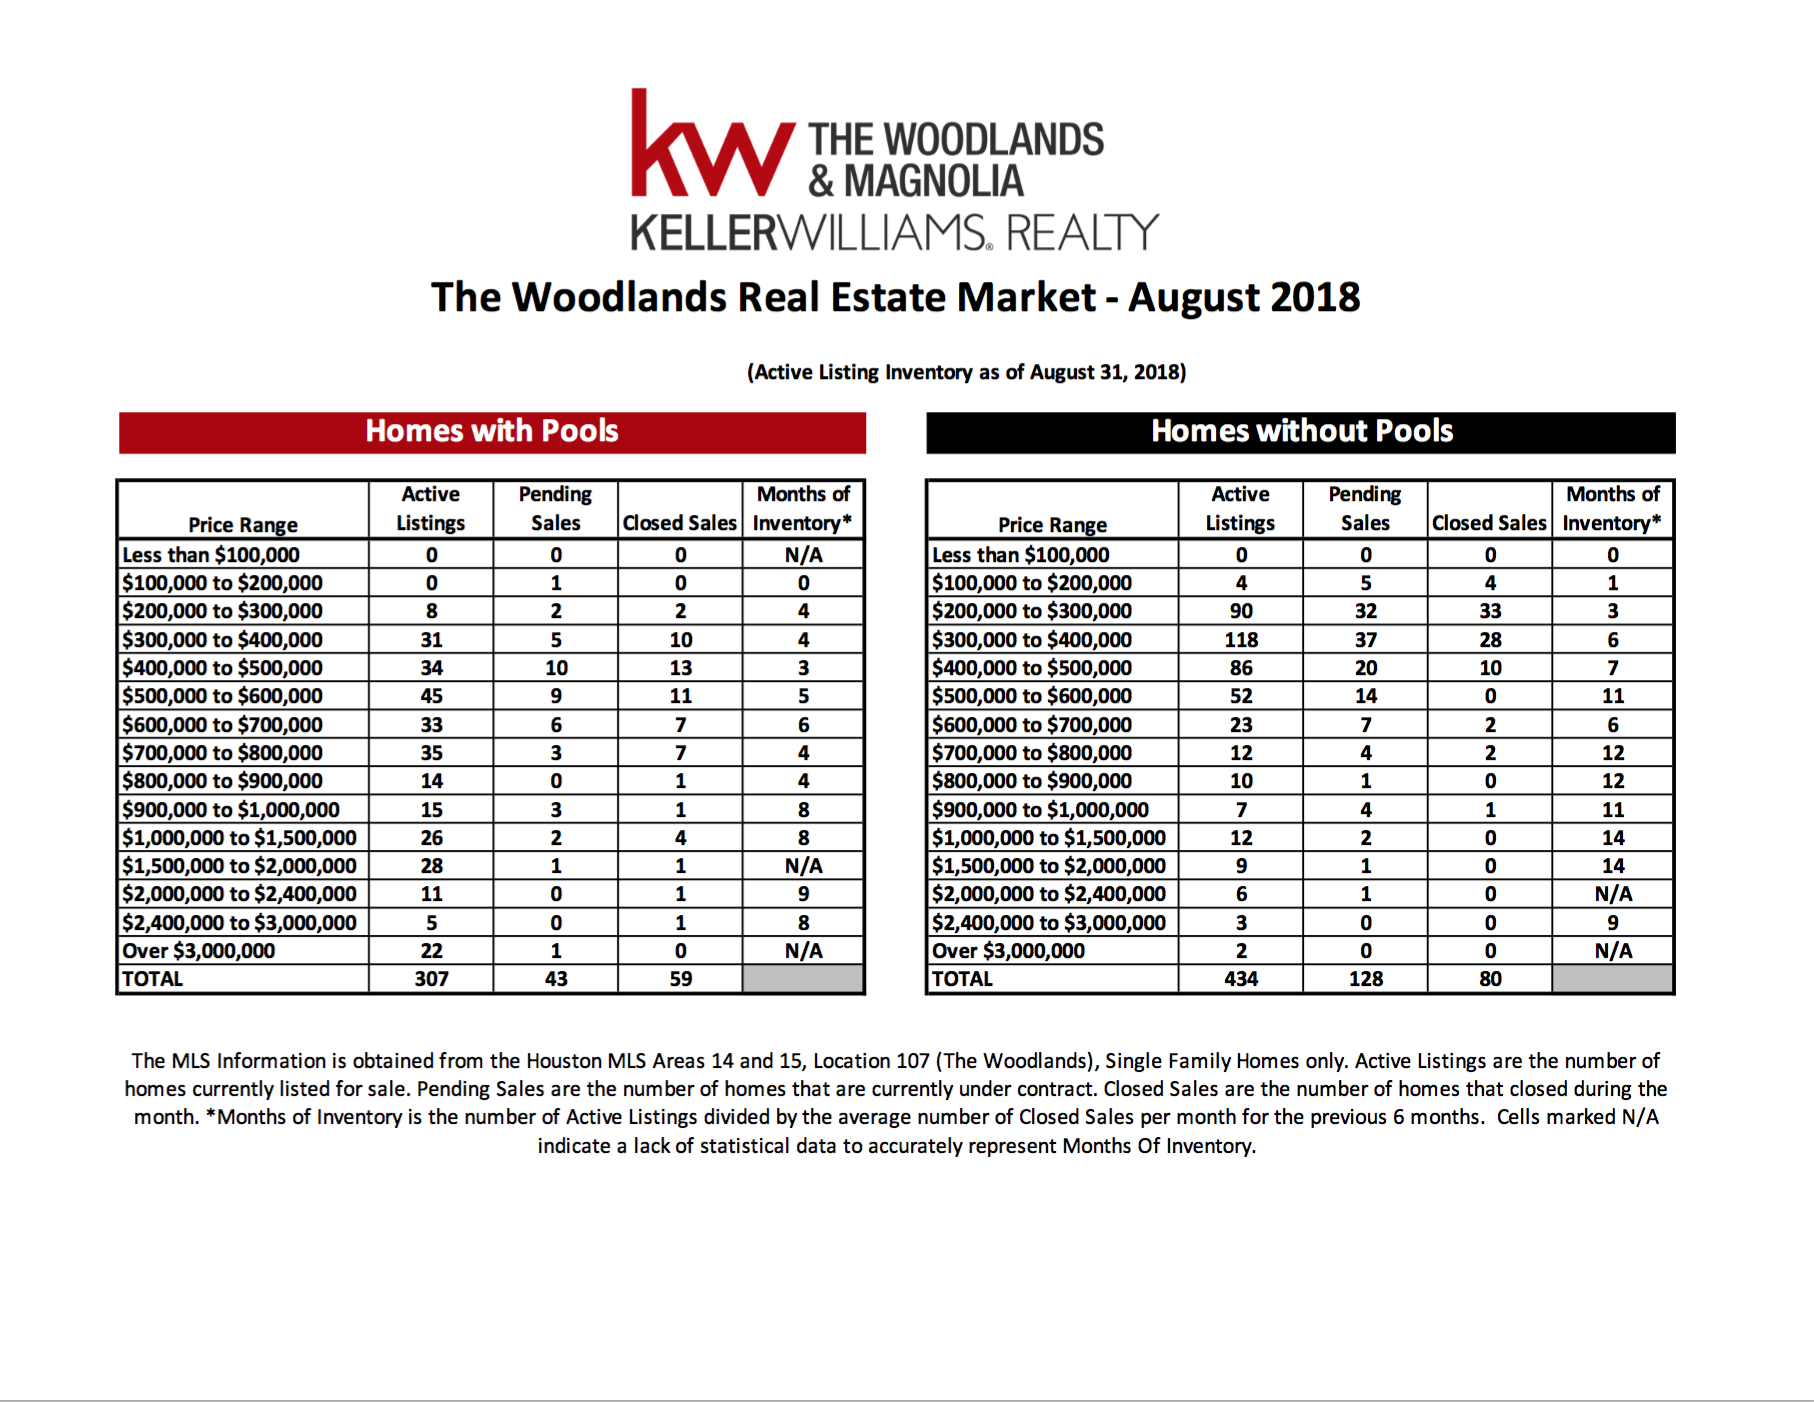 , August 2018 MarketWatch Report – The Woodlands, KW Woodlands